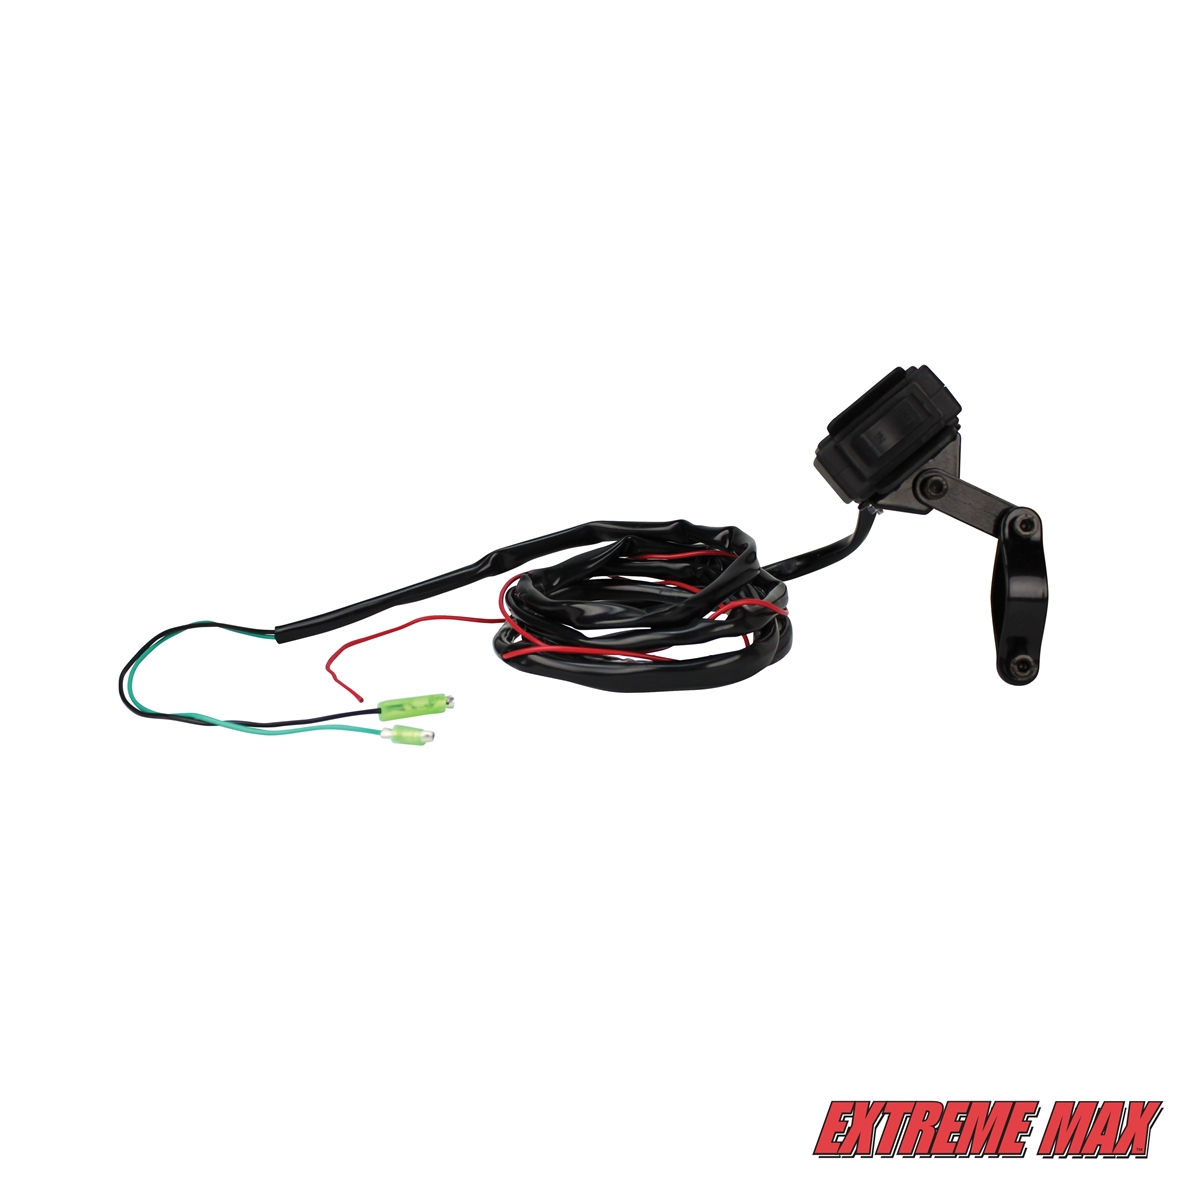 Extreme Max 5600.3175 Universal Waterproof ATV Winch